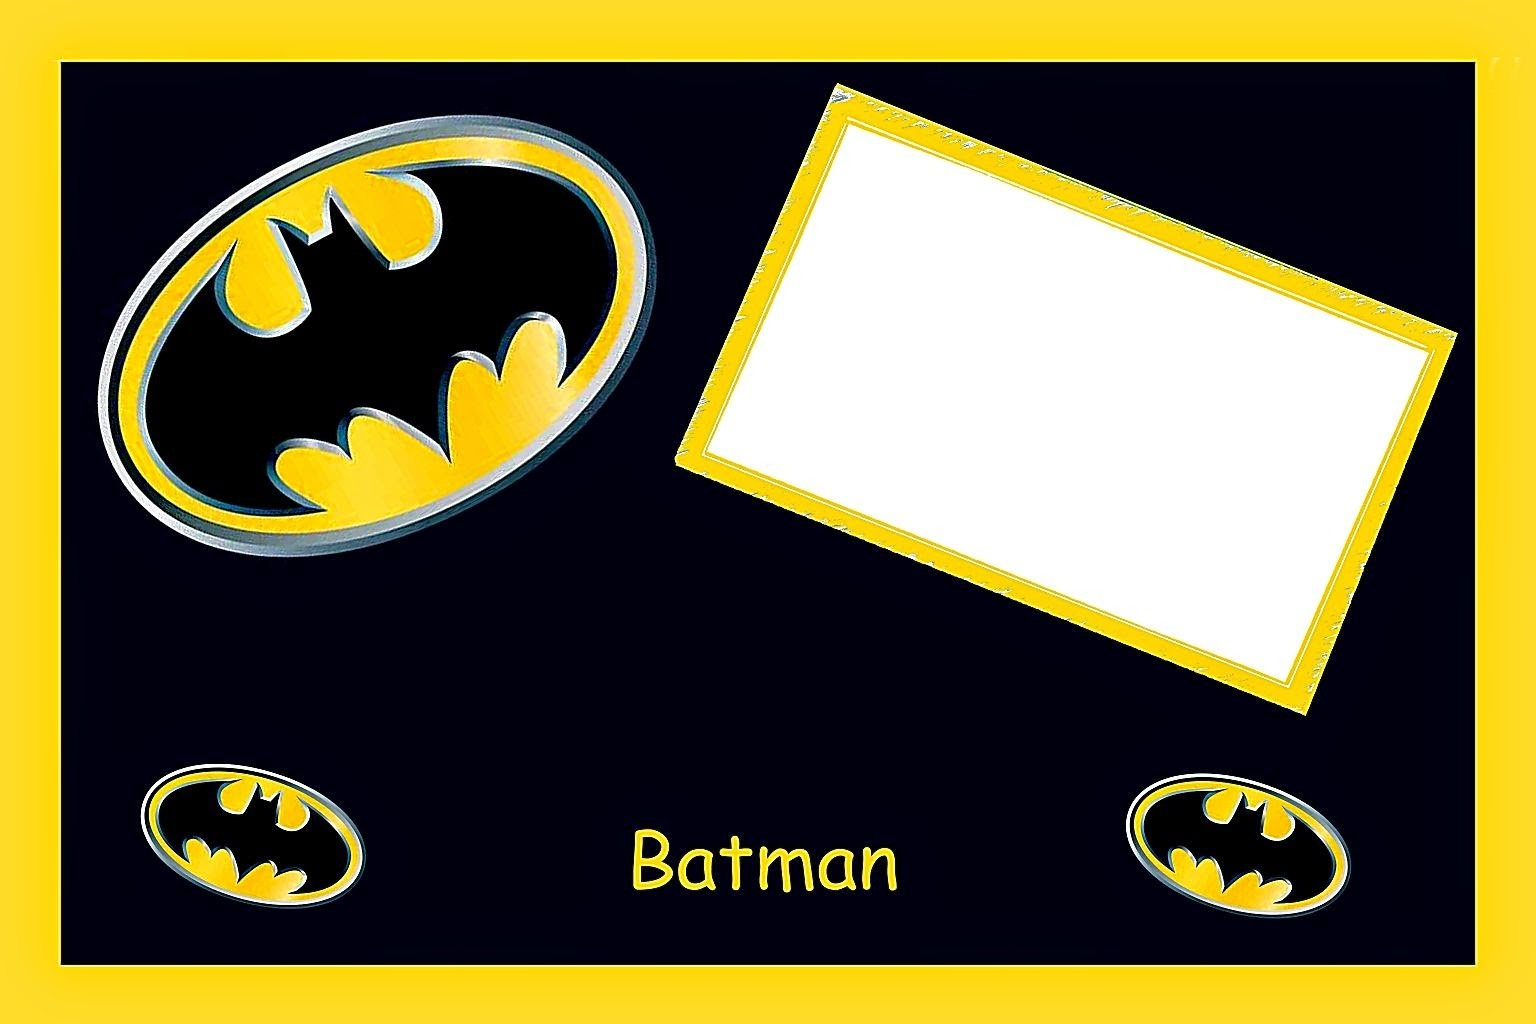 Batman Birthday: Free Printable Cards Or Invitations. - Oh My Fiesta - Free Printable Dr Who Birthday Card